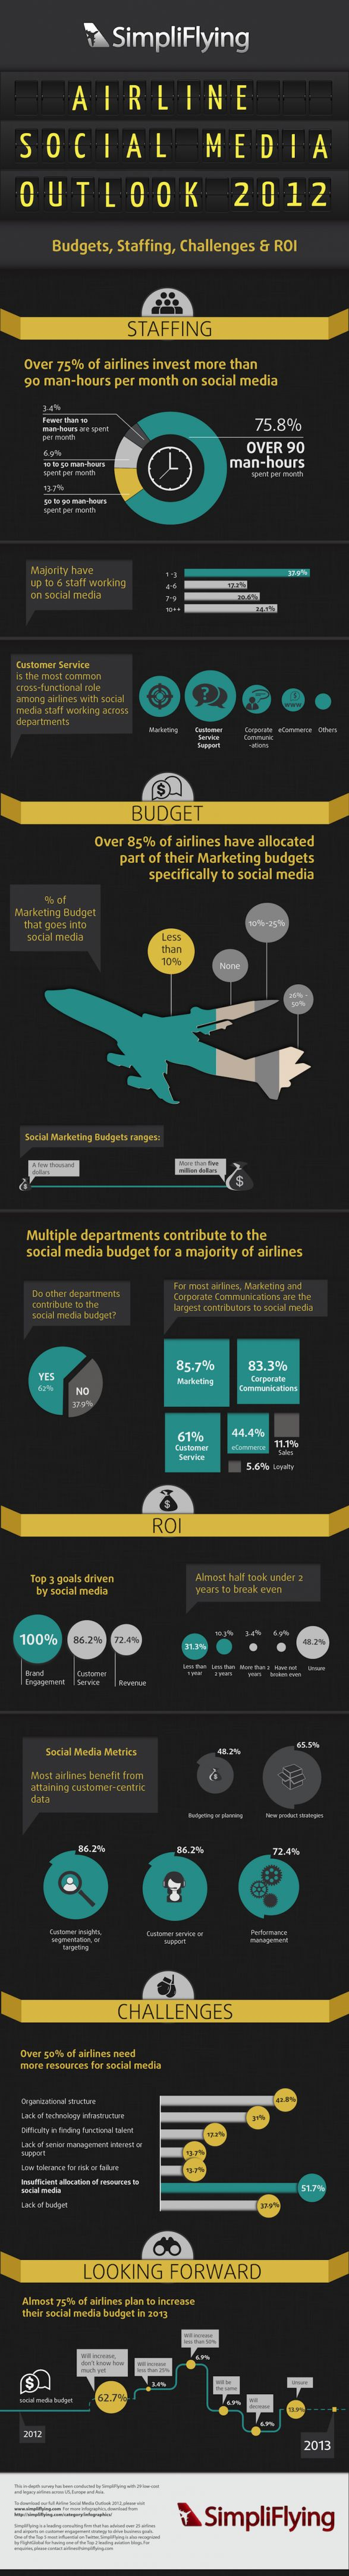 How airlines became the most progressive industry in adopting social media